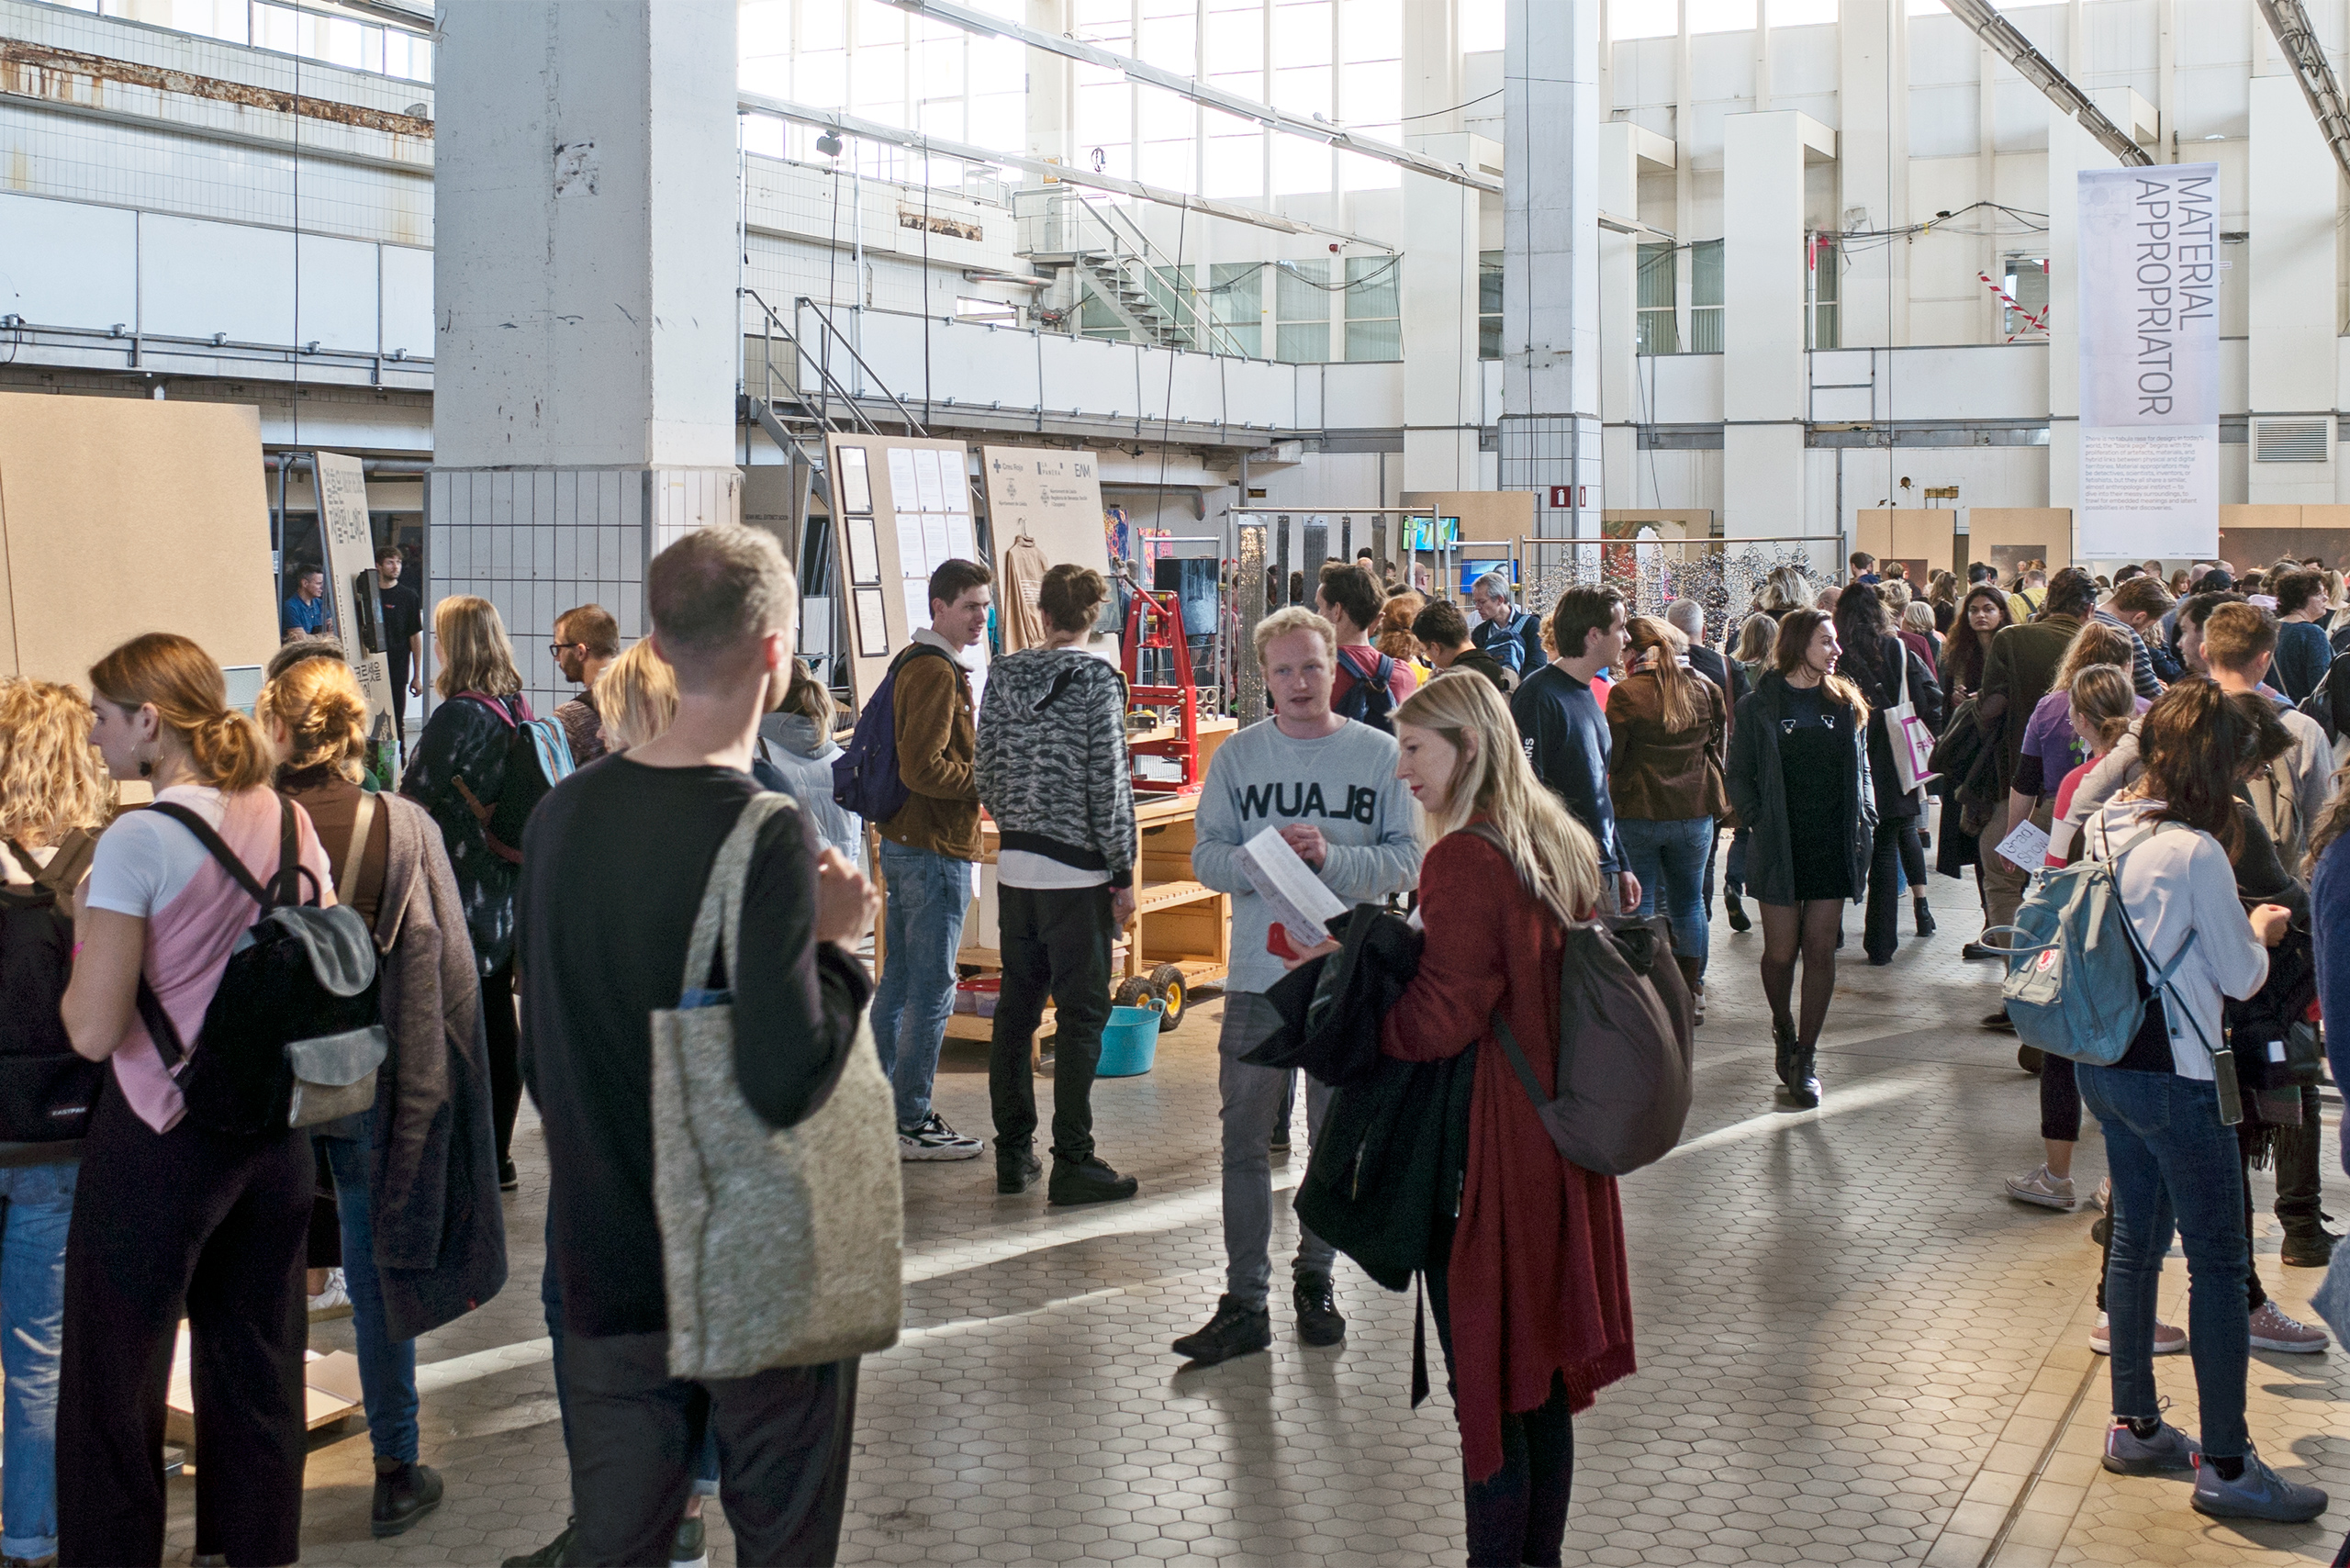 Graduation Show of the Design Academy Eindhoven during the Dutch Design Week